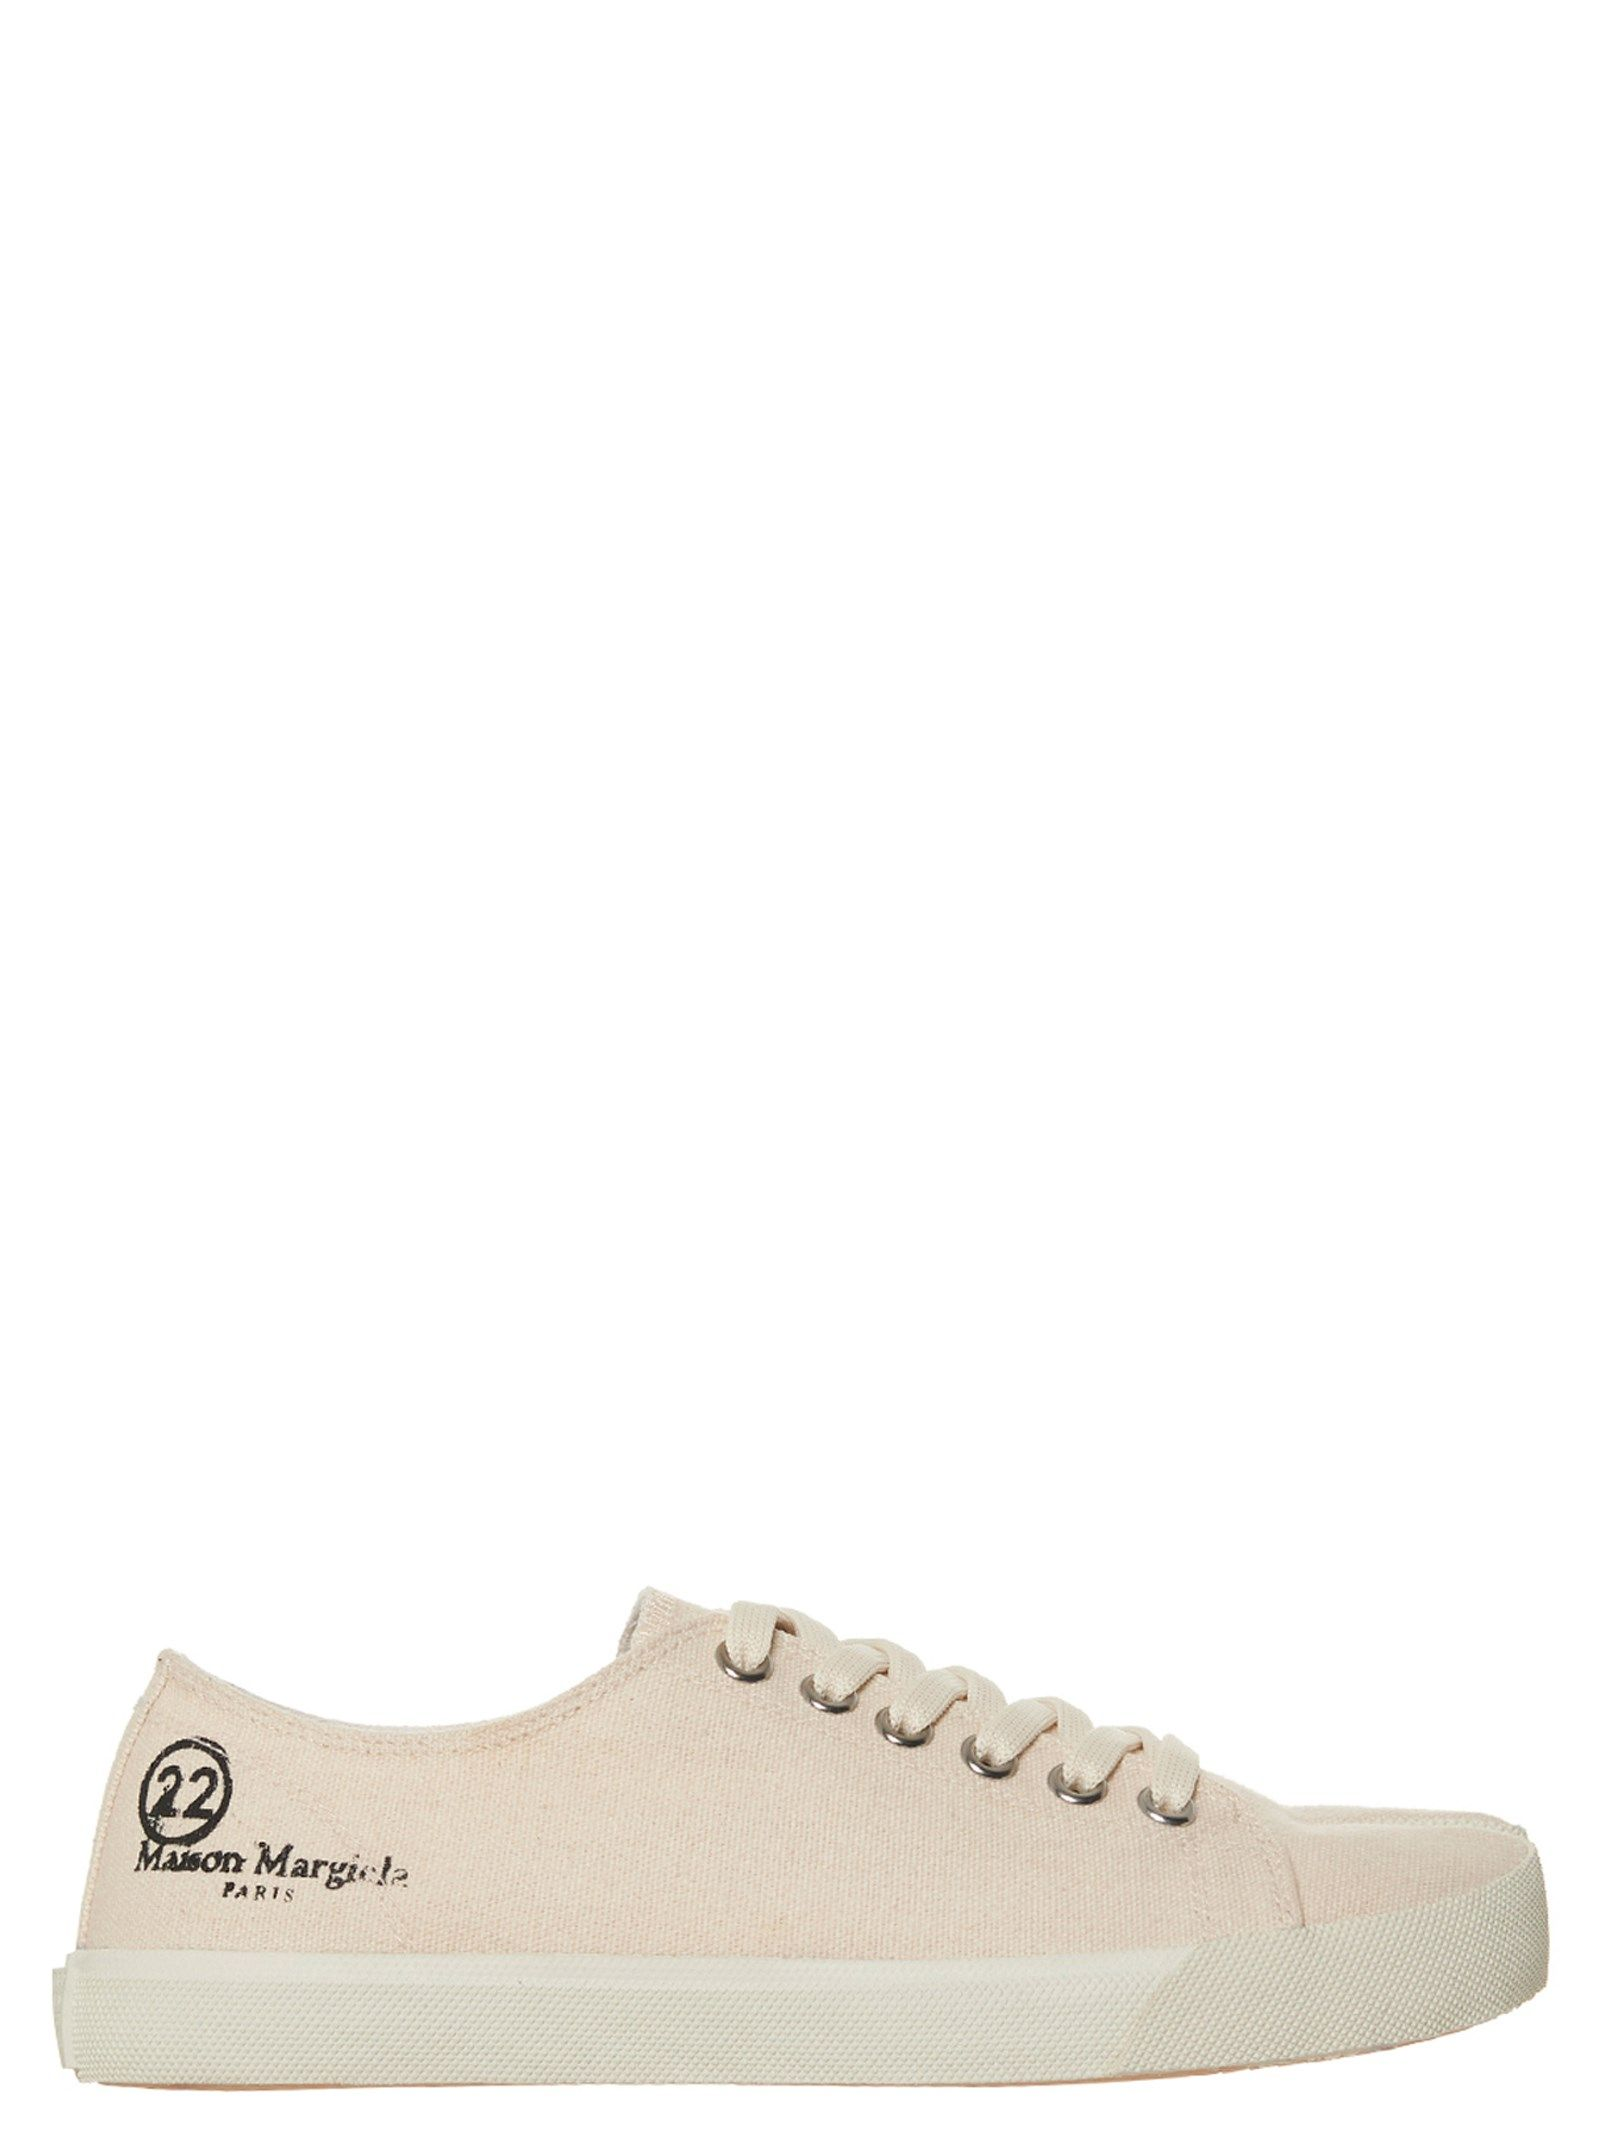 Maison Margiela Canvases MAISON MARGIELA WOMEN'S WHITE OTHER MATERIALS SNEAKERS